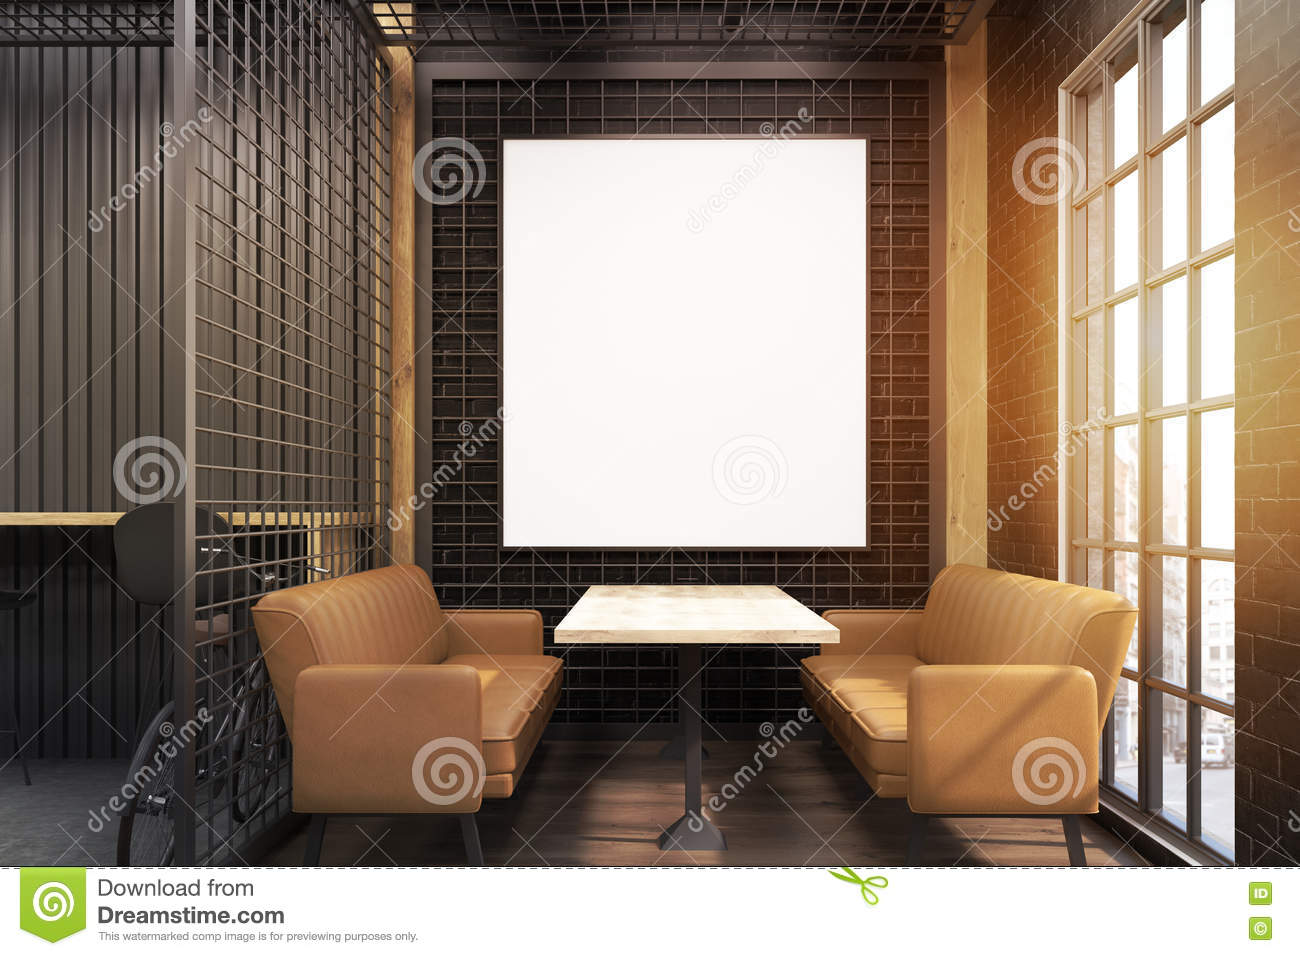 cafe interior with grate and beige sofas, toned stock photo